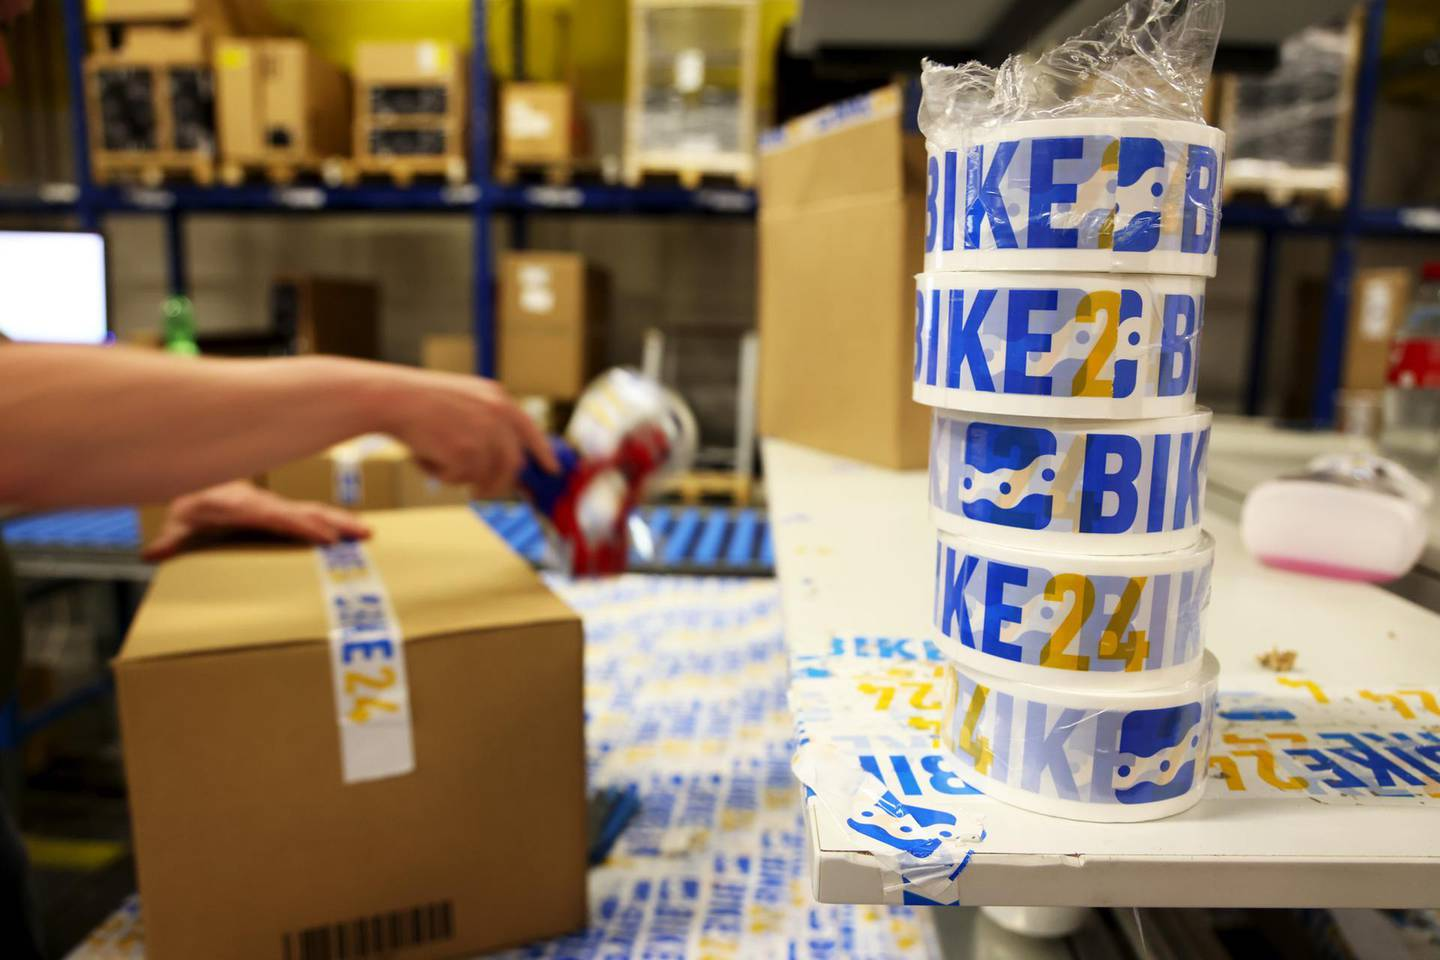 A worker seals a shipping box with adhesive tape at the Bike24 Holding AG logistics center in Dresden, Germany, on Tuesday, June 8, 2021. Bike24 is preparing to list on the Frankfurt Stock Exchange. Photographer: Liesa Johannssen-Koppitz/Bloomberg